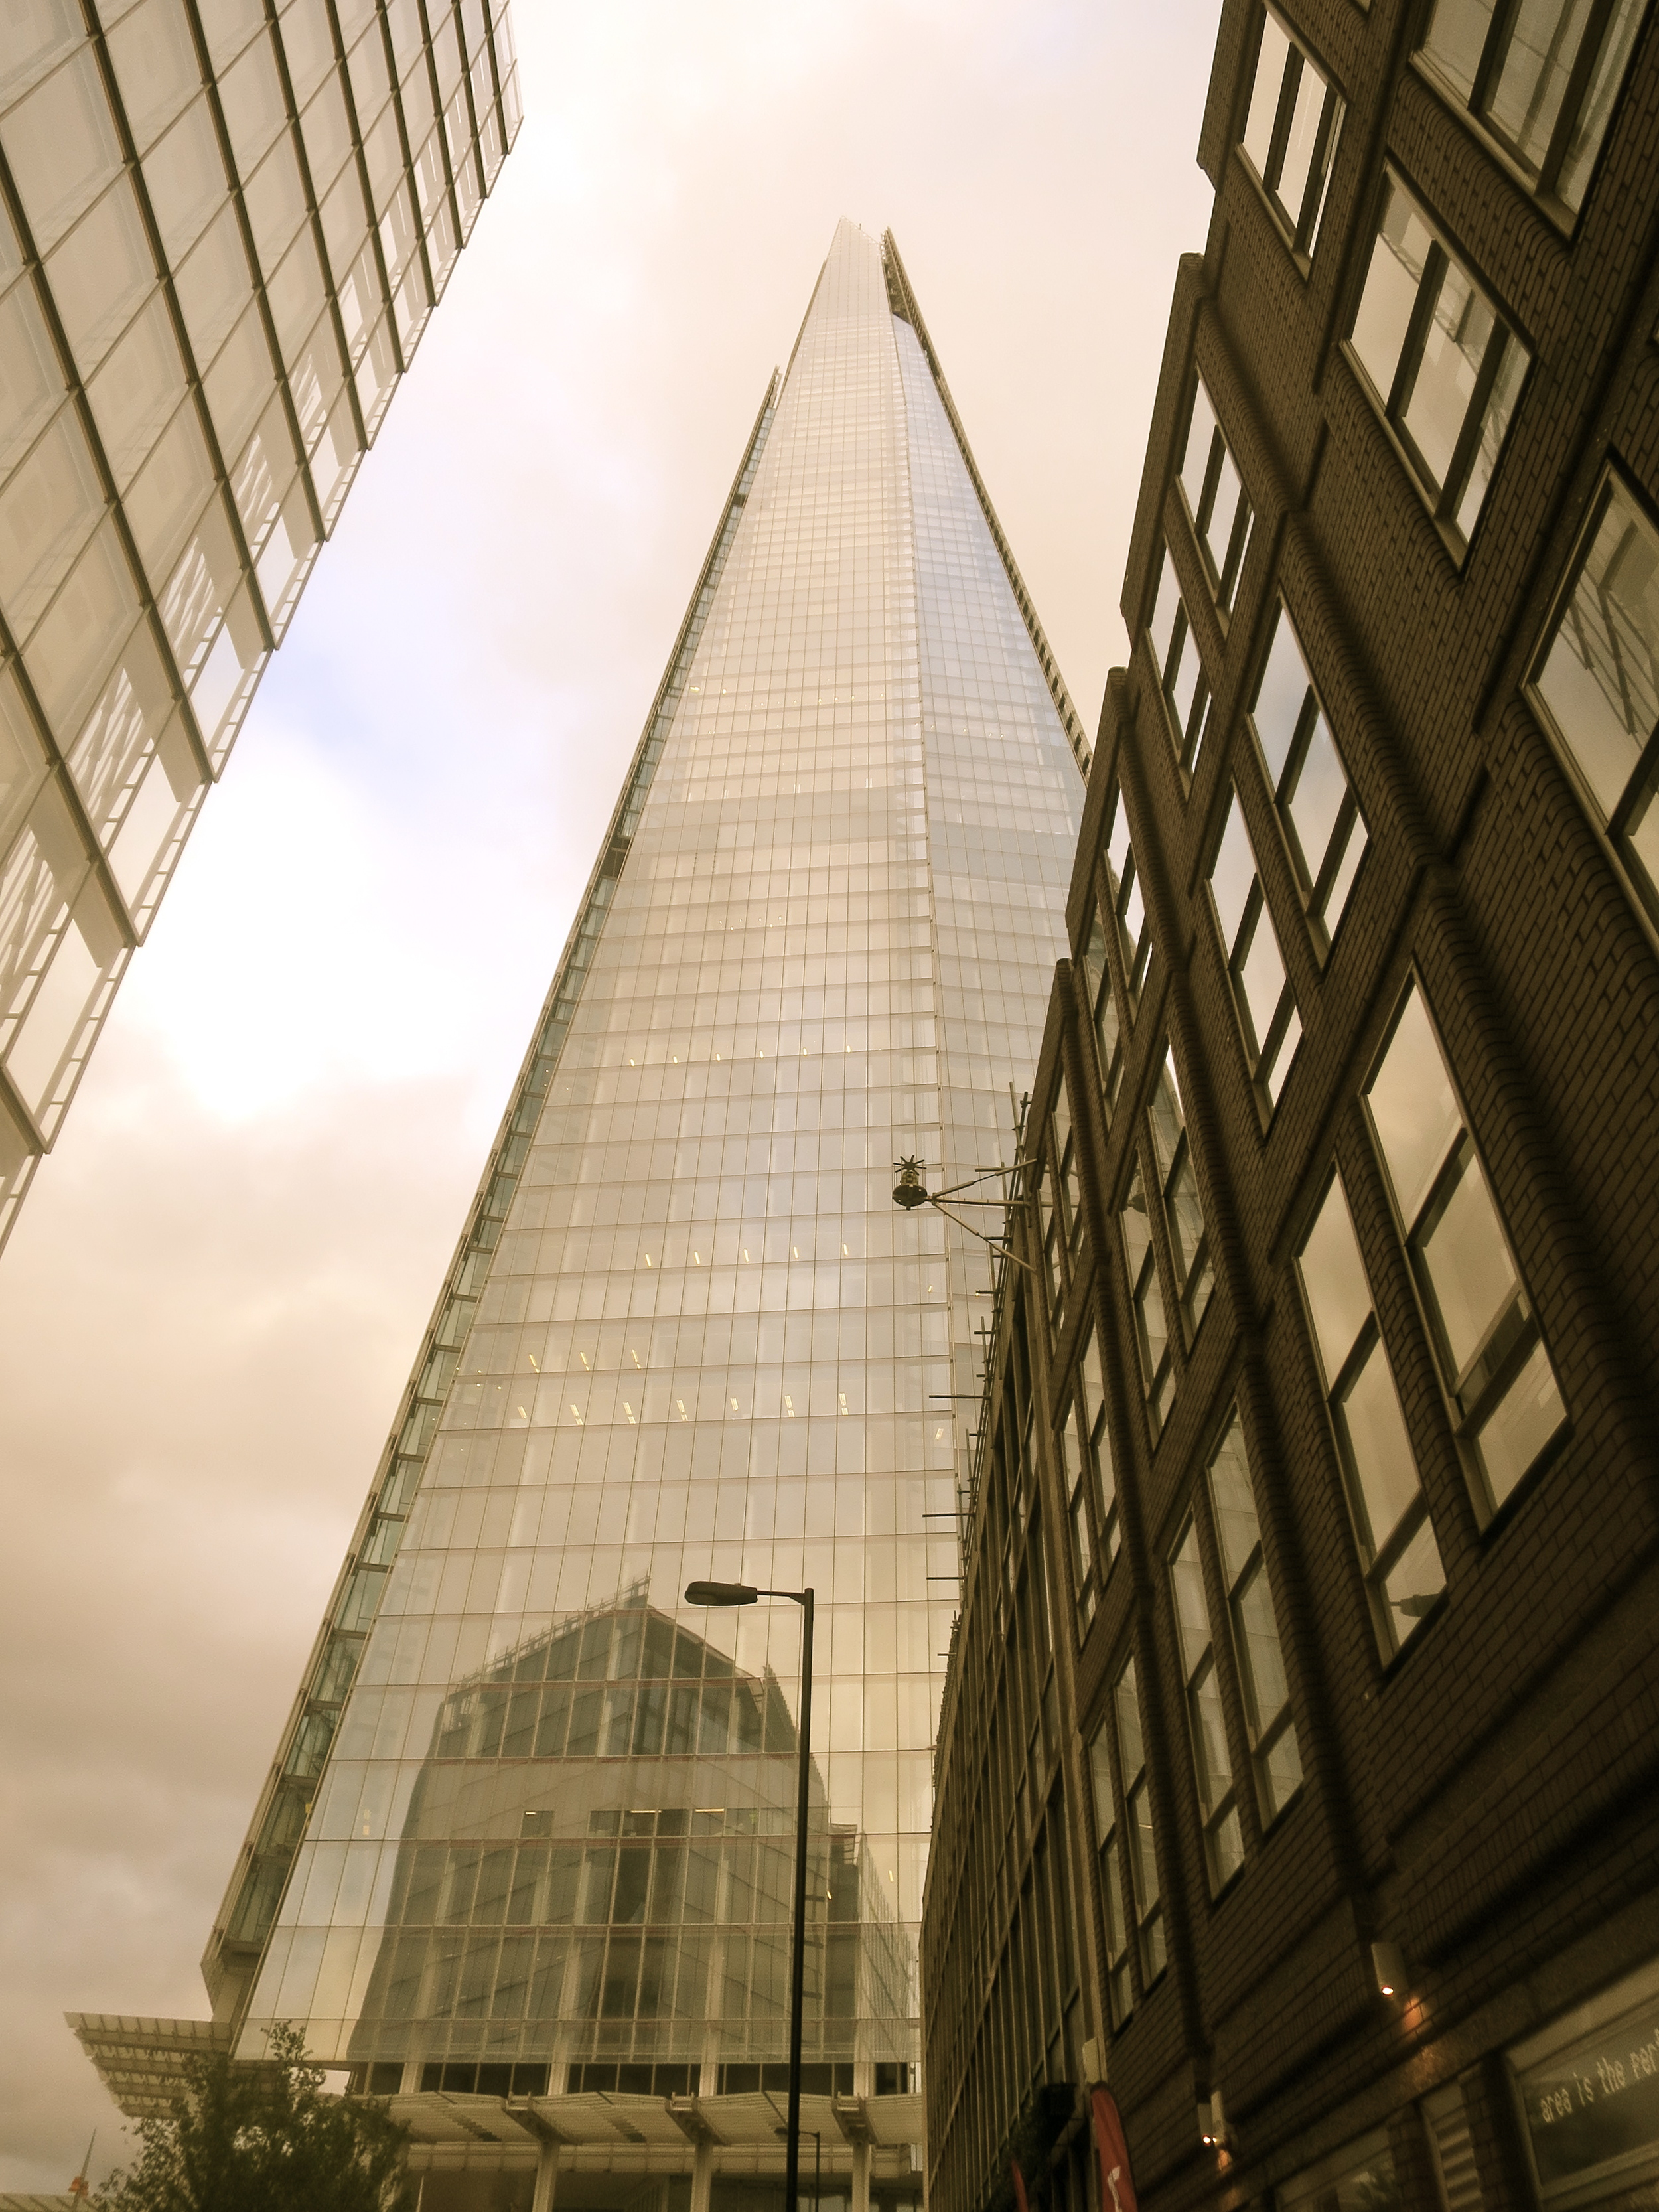 Staring up at the sky via the tallest building in Europe.